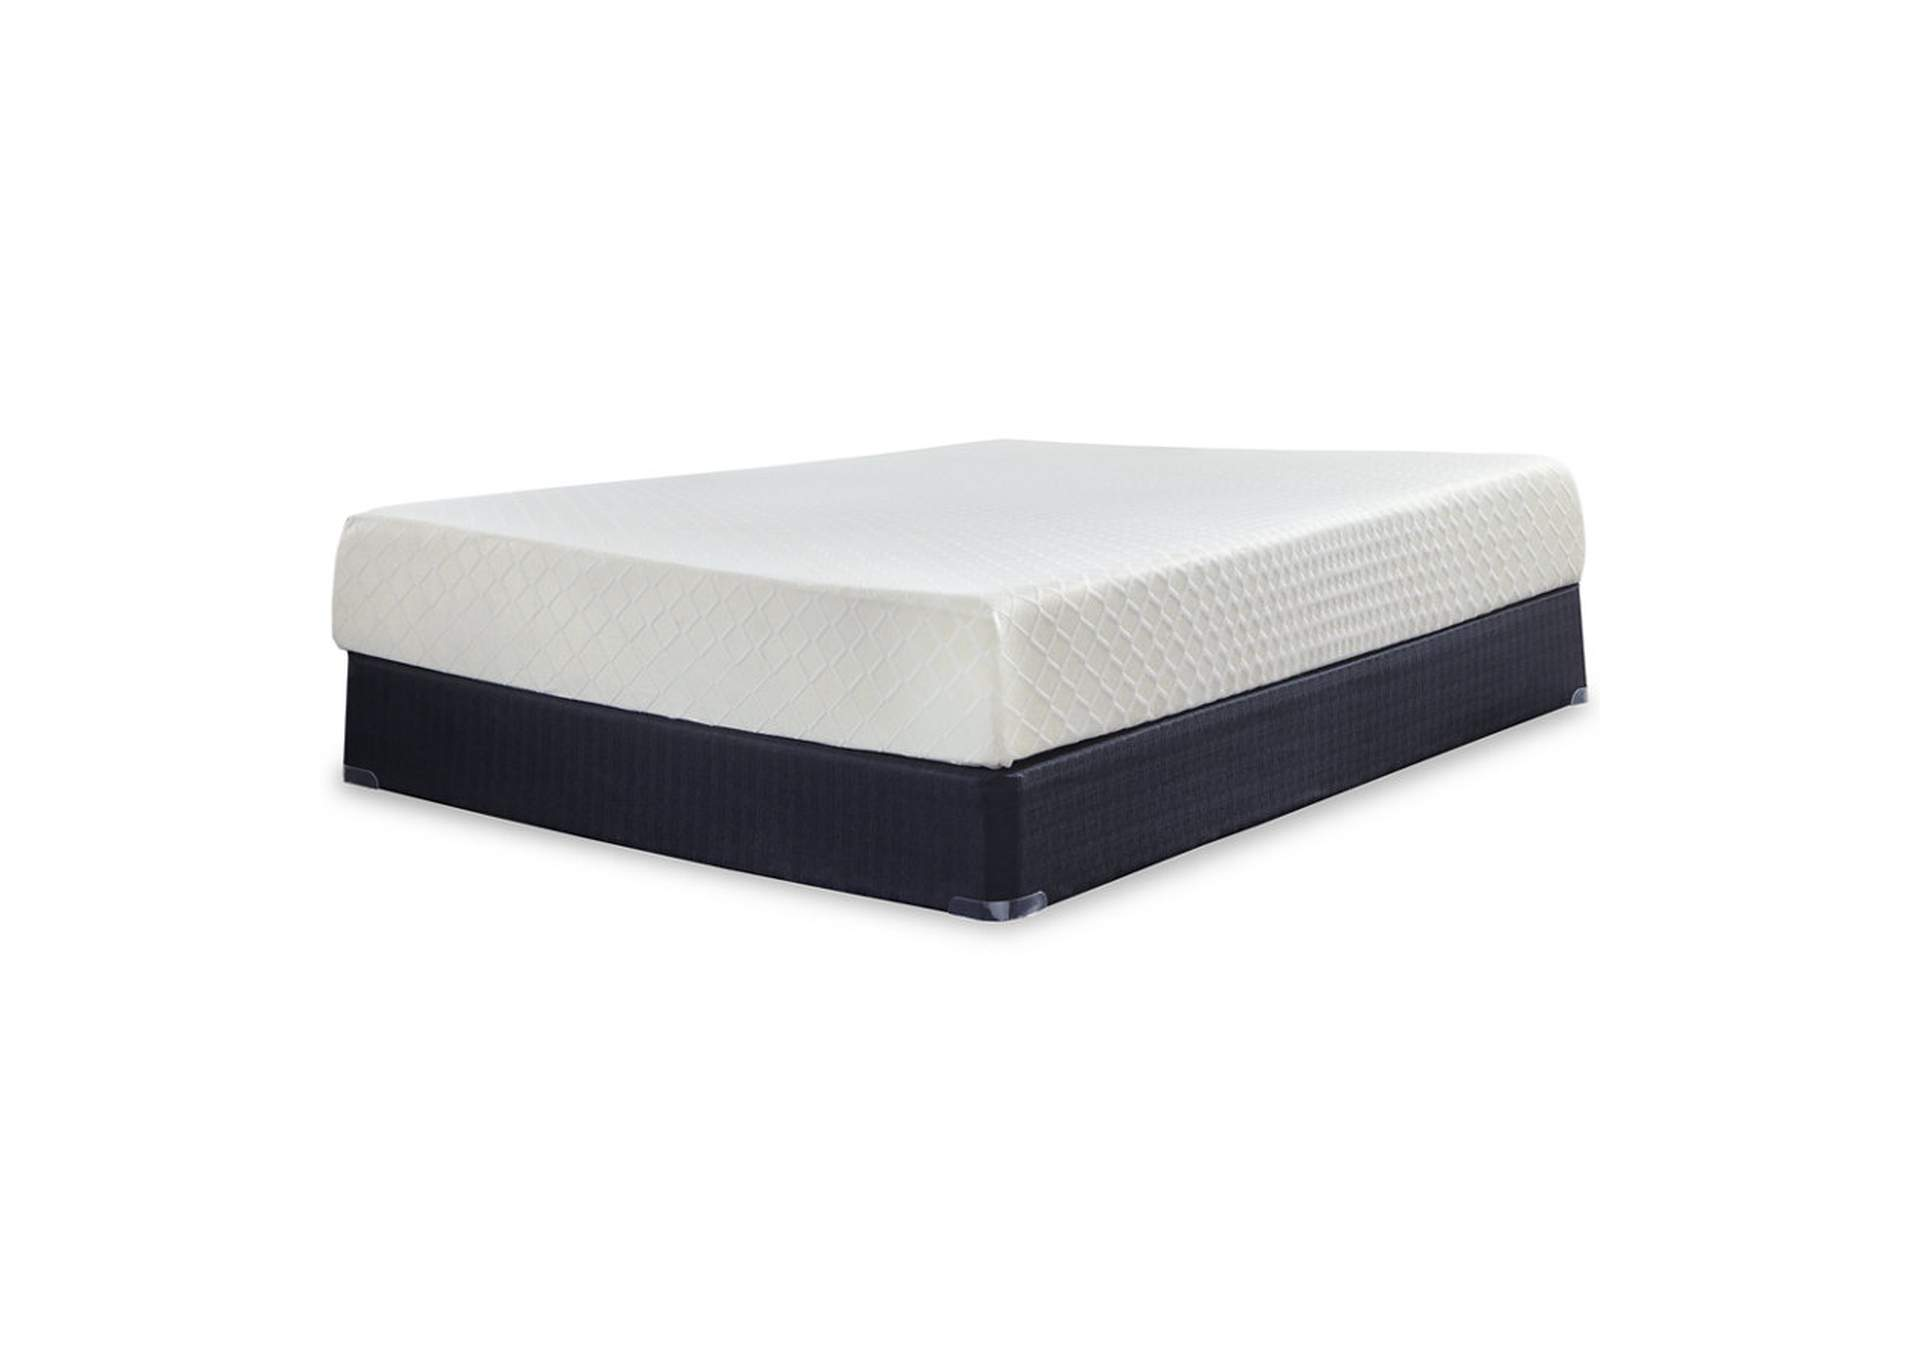 10 Inch Chime Memory Foam White California King Mattress w/Foundation,Sierra Sleep by Ashley